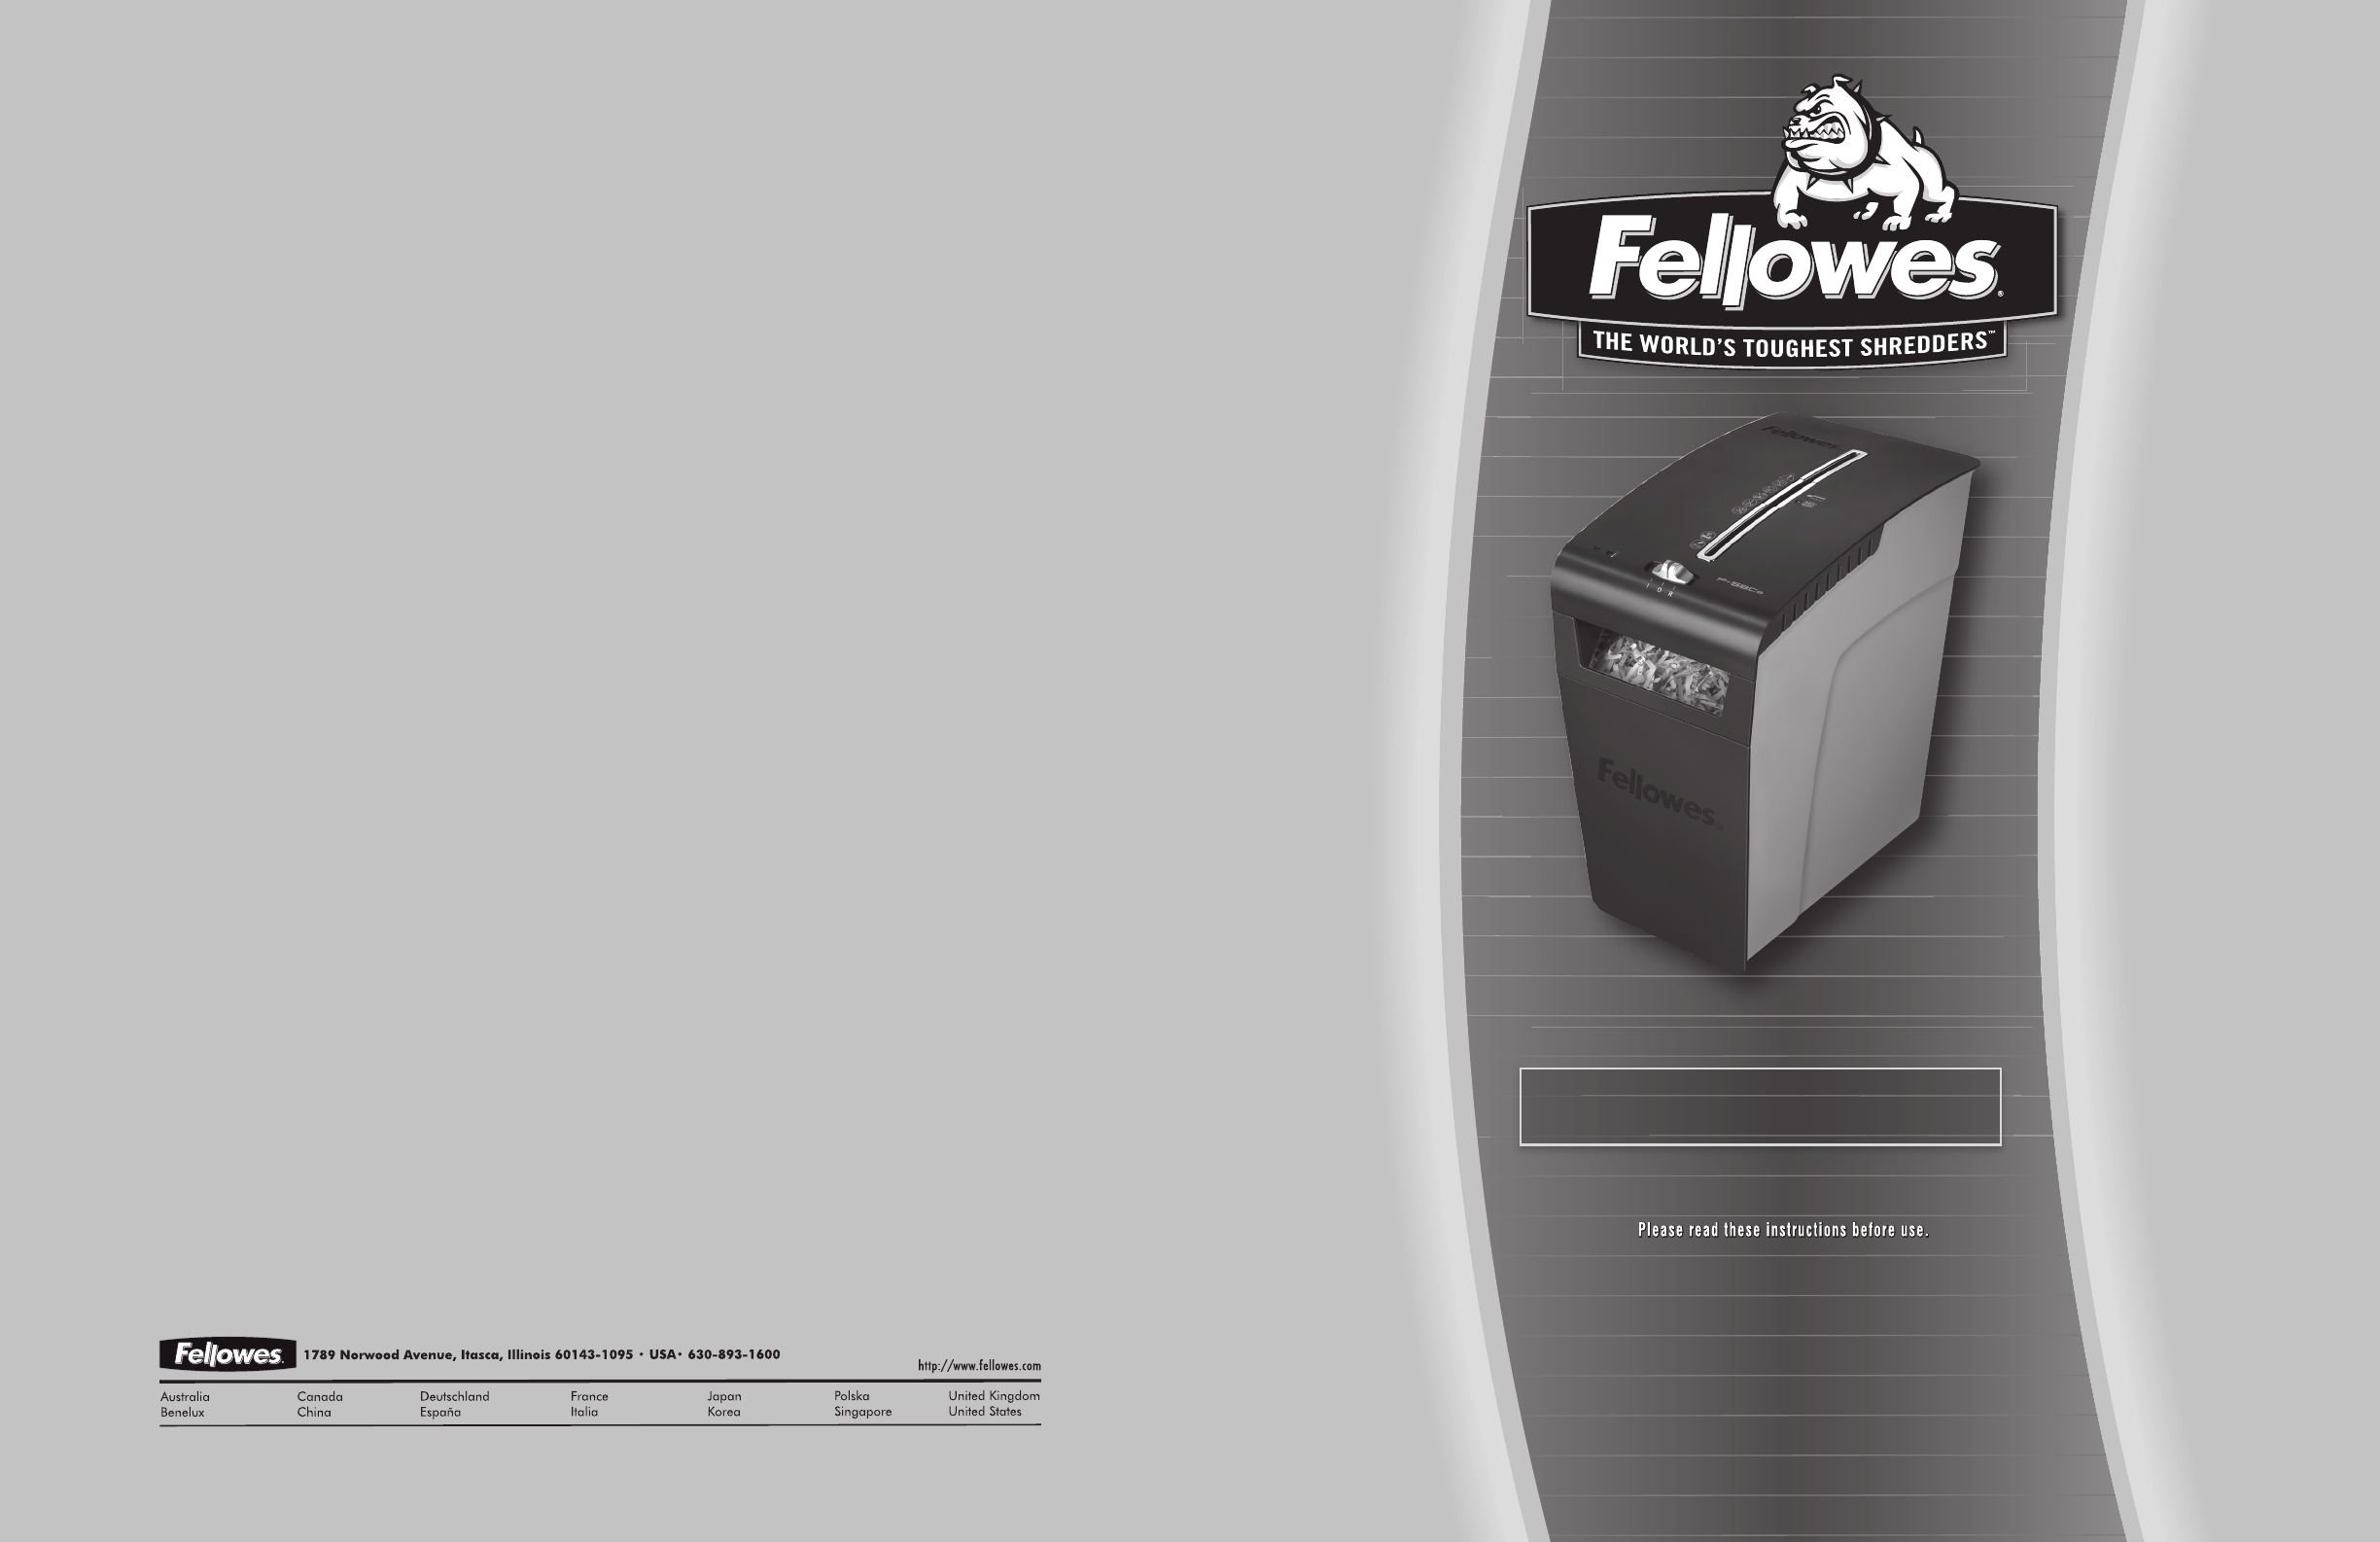 fellowes ps 60 shredder manual